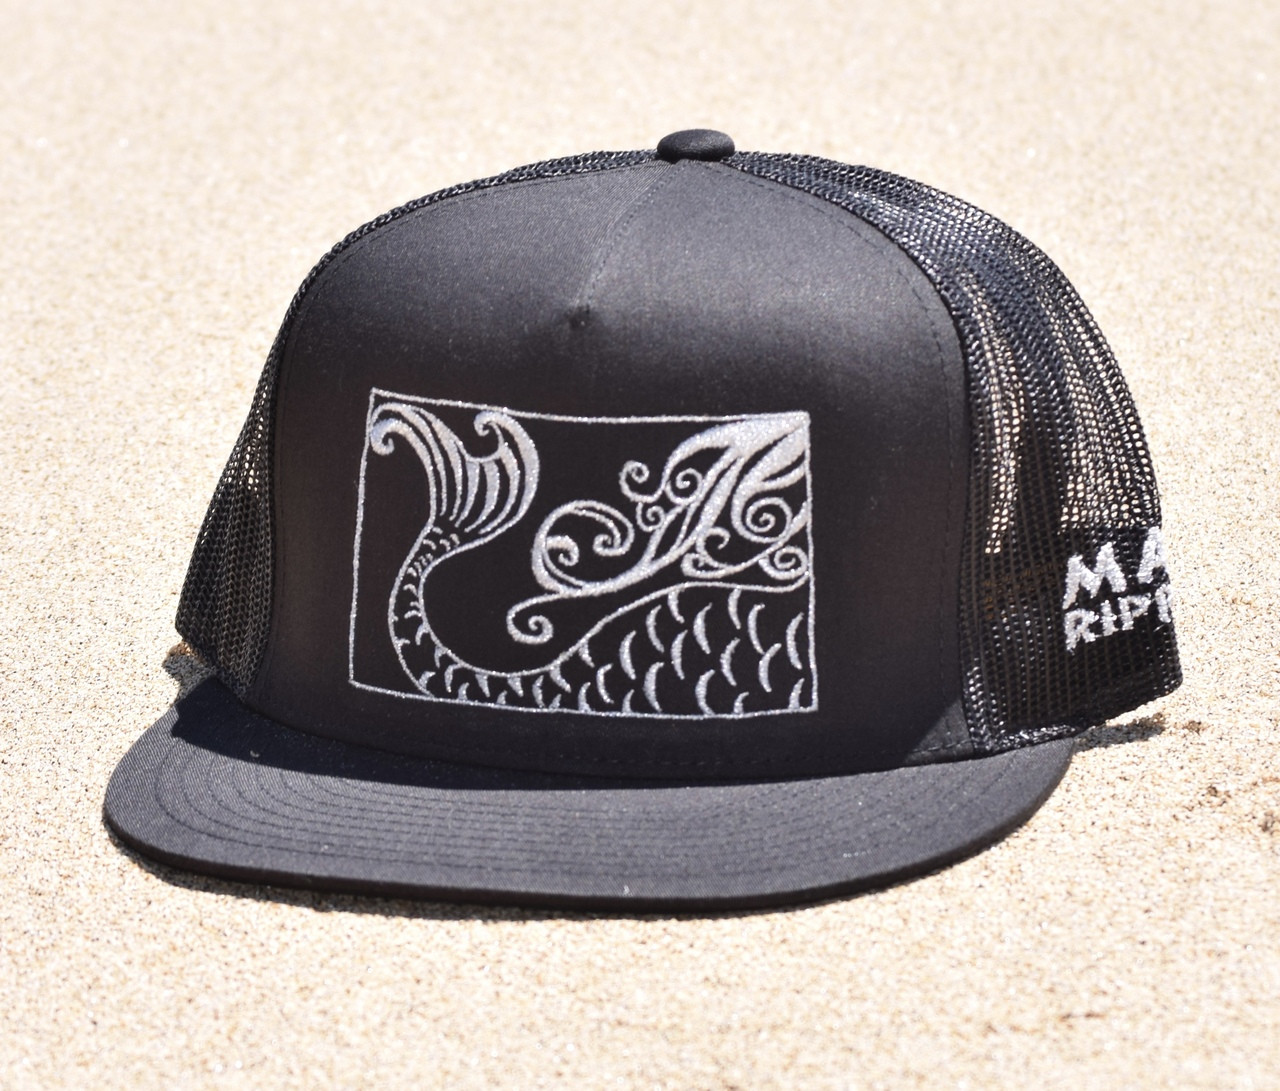 9941c79d0d6c52 Mermaid Tail Canvas Trucker - Hat Black/Silver - Maui Rippers Boardshorts